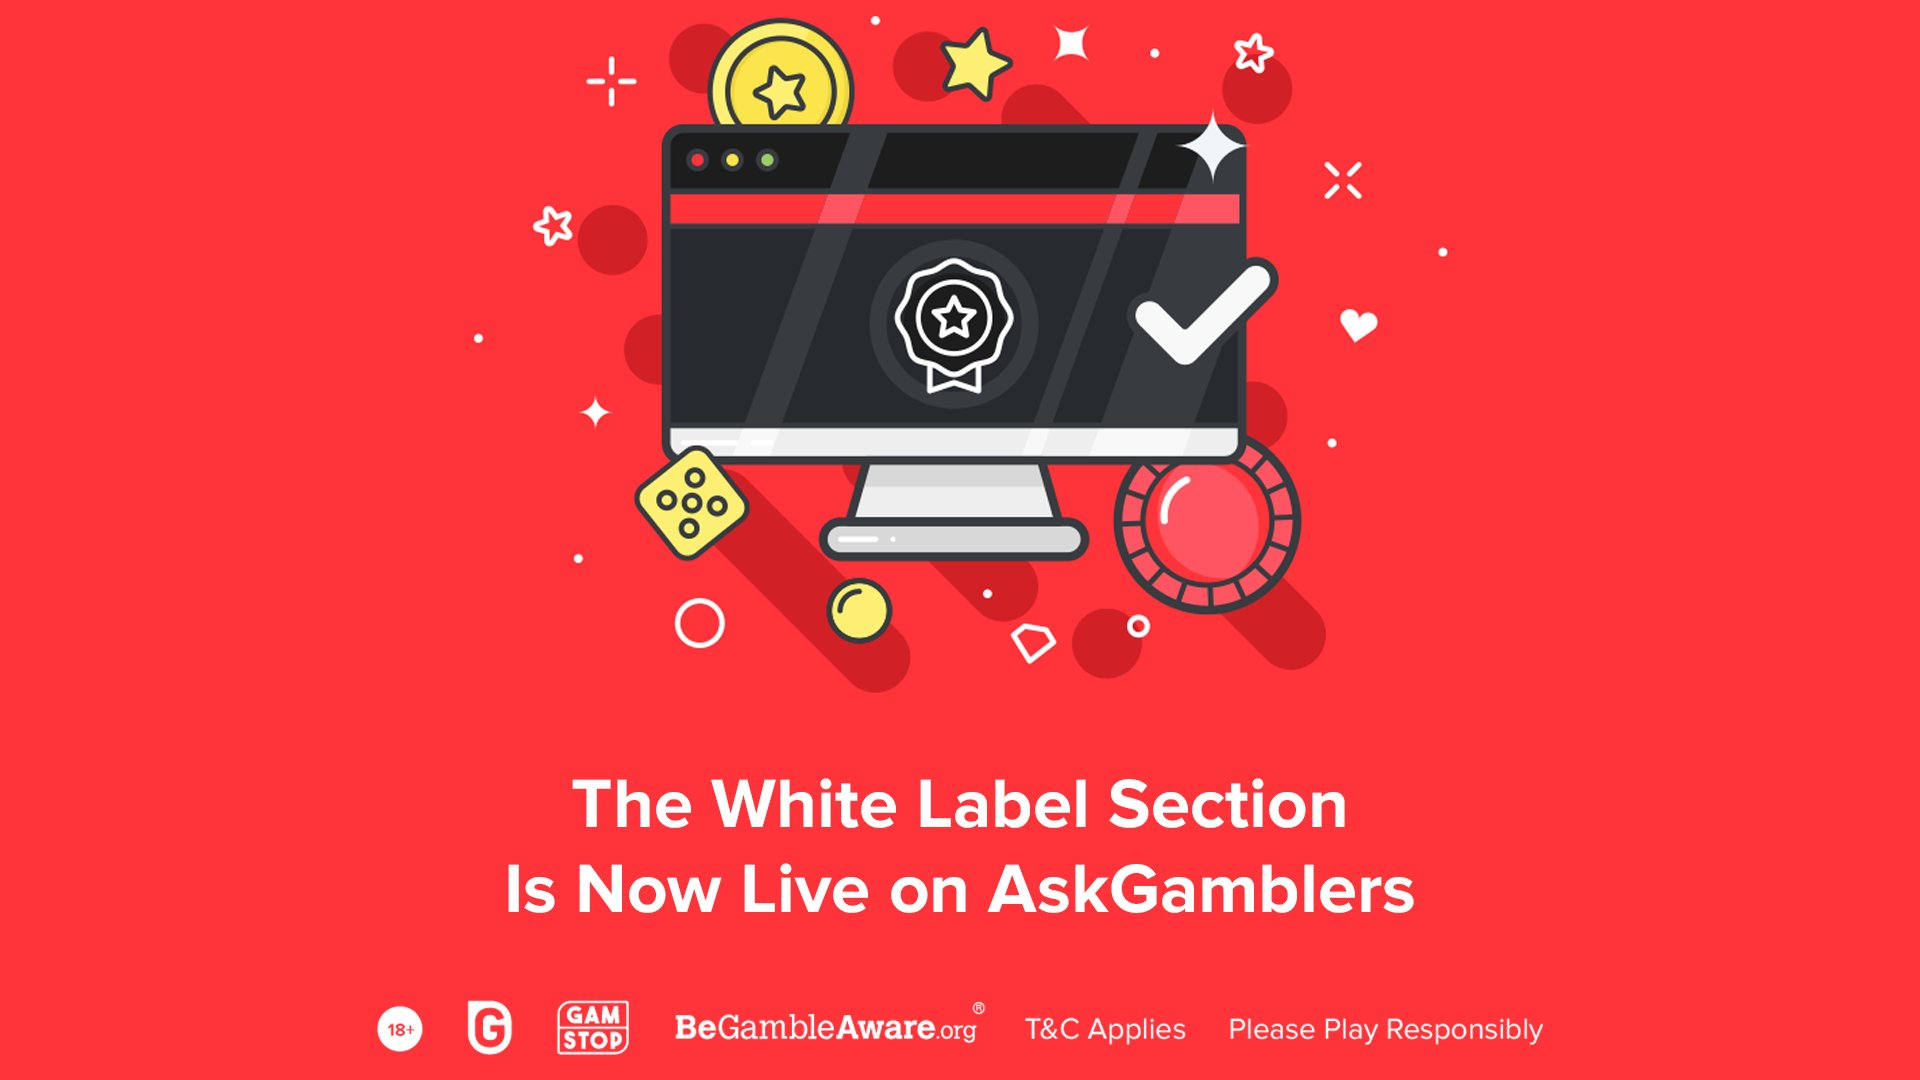 AskGamblers Launch International Edition White Label